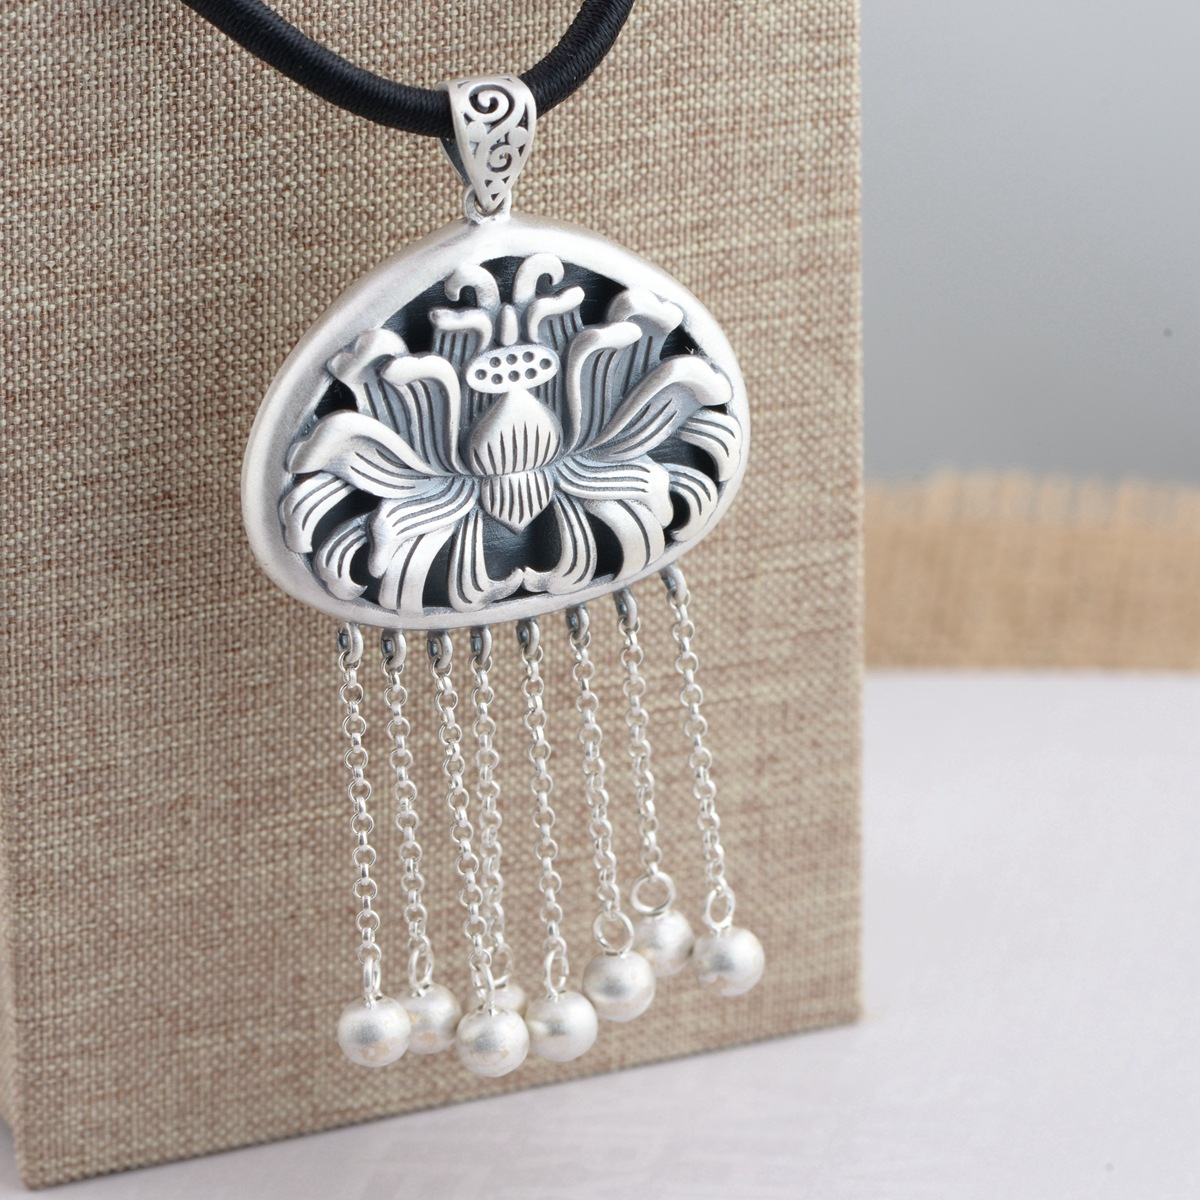 Handmade silver wholesale 990 fine silver pendant Thai silver antique style for women blooming flowers tassel pendant antique silver coin tassel anklet 1pc